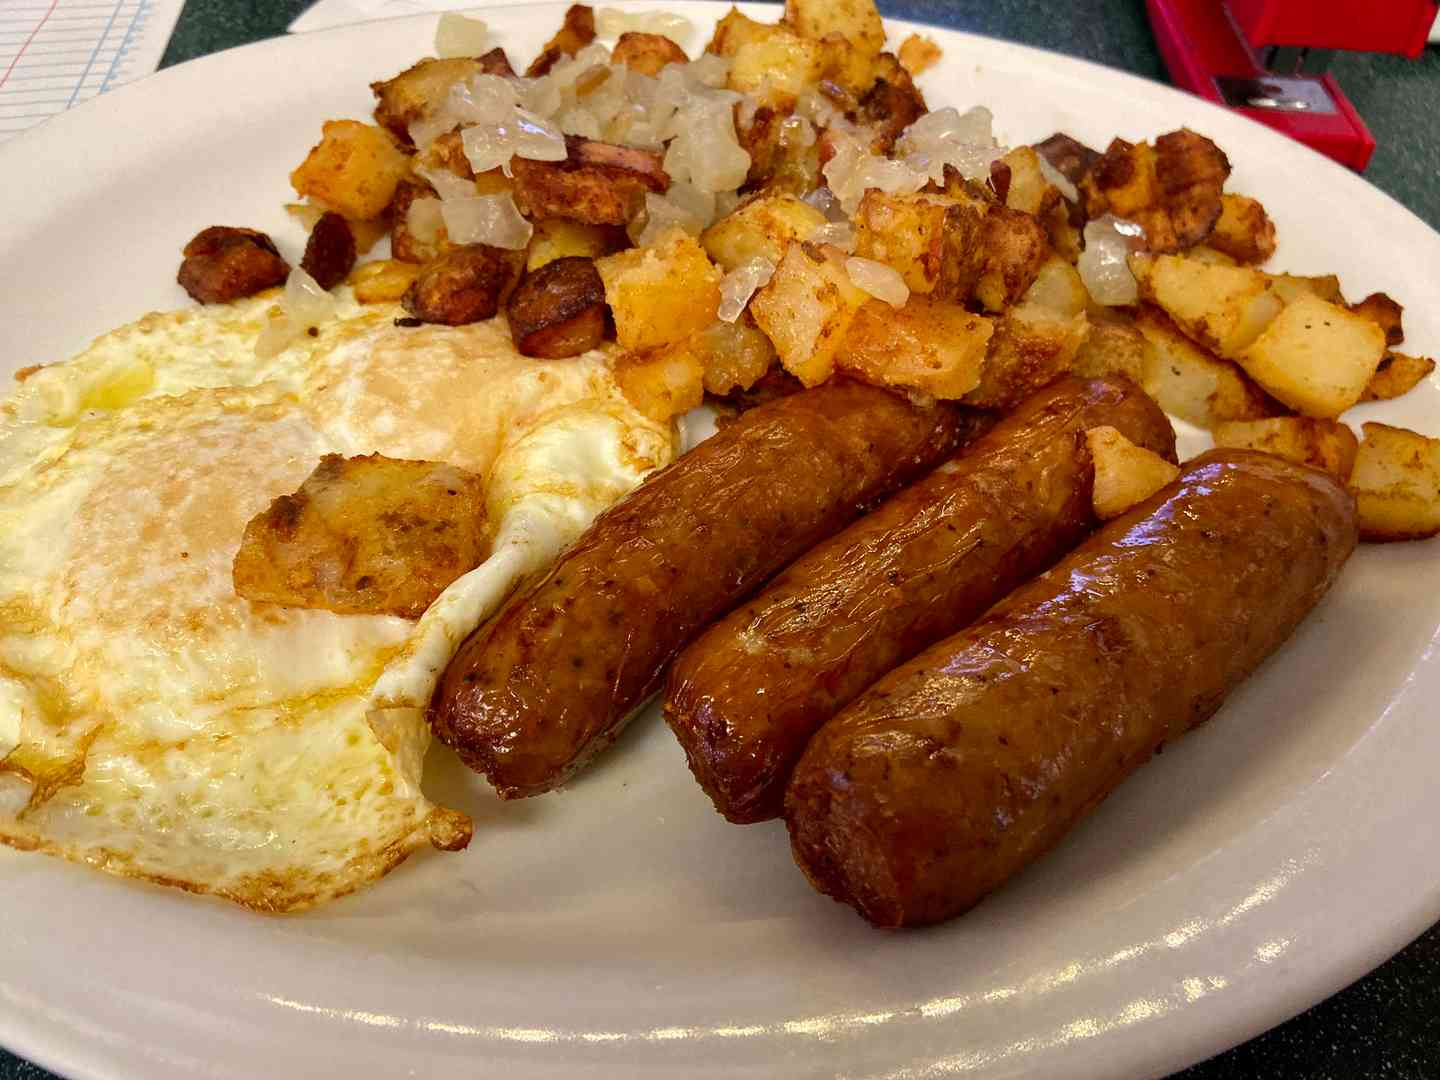 Jumbo Sausage and Eggs